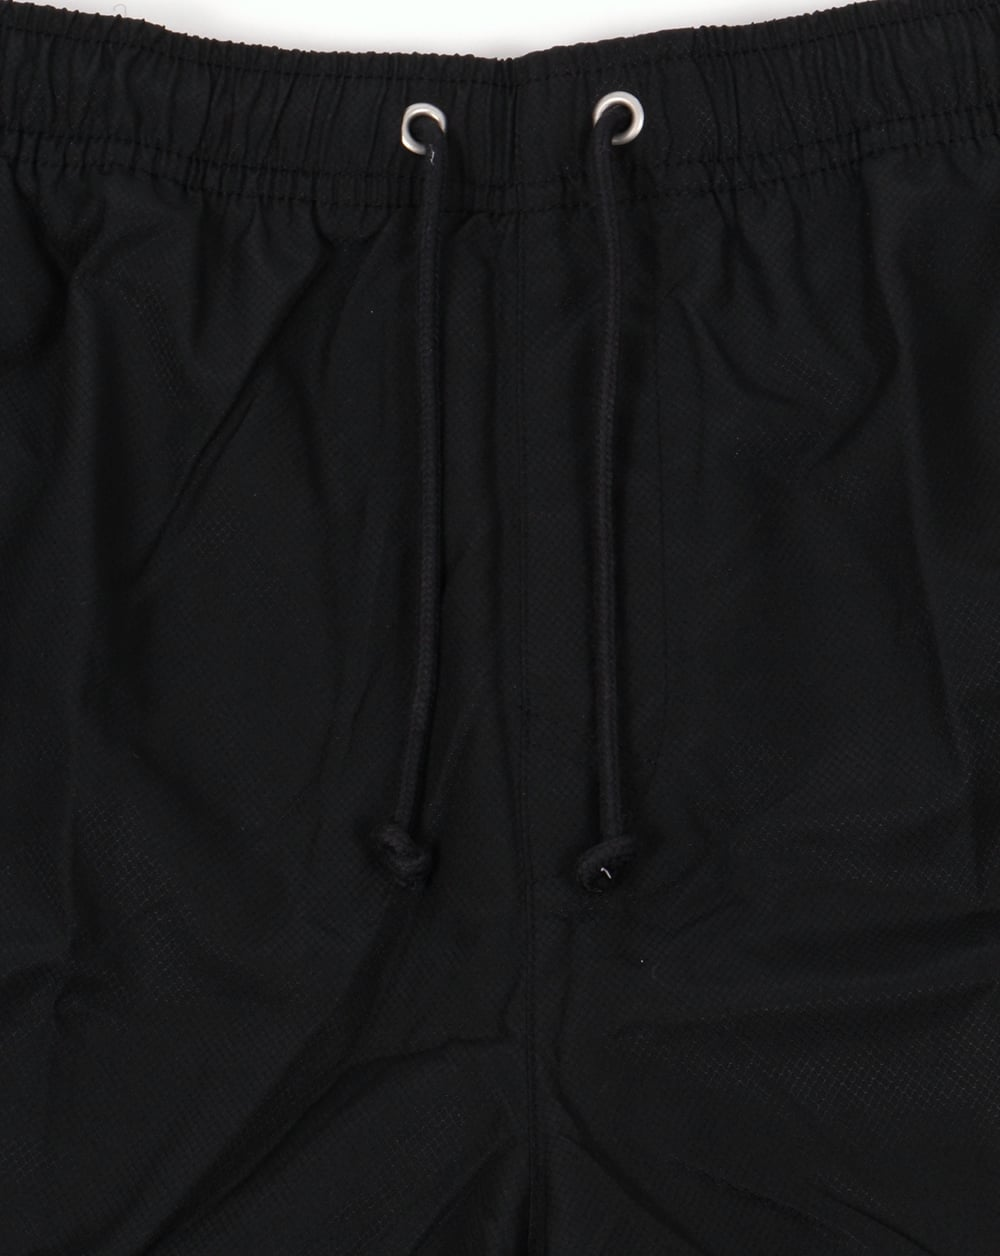 db9f7056de0f Lacoste Sport Diamond Drawstring Shorts Black